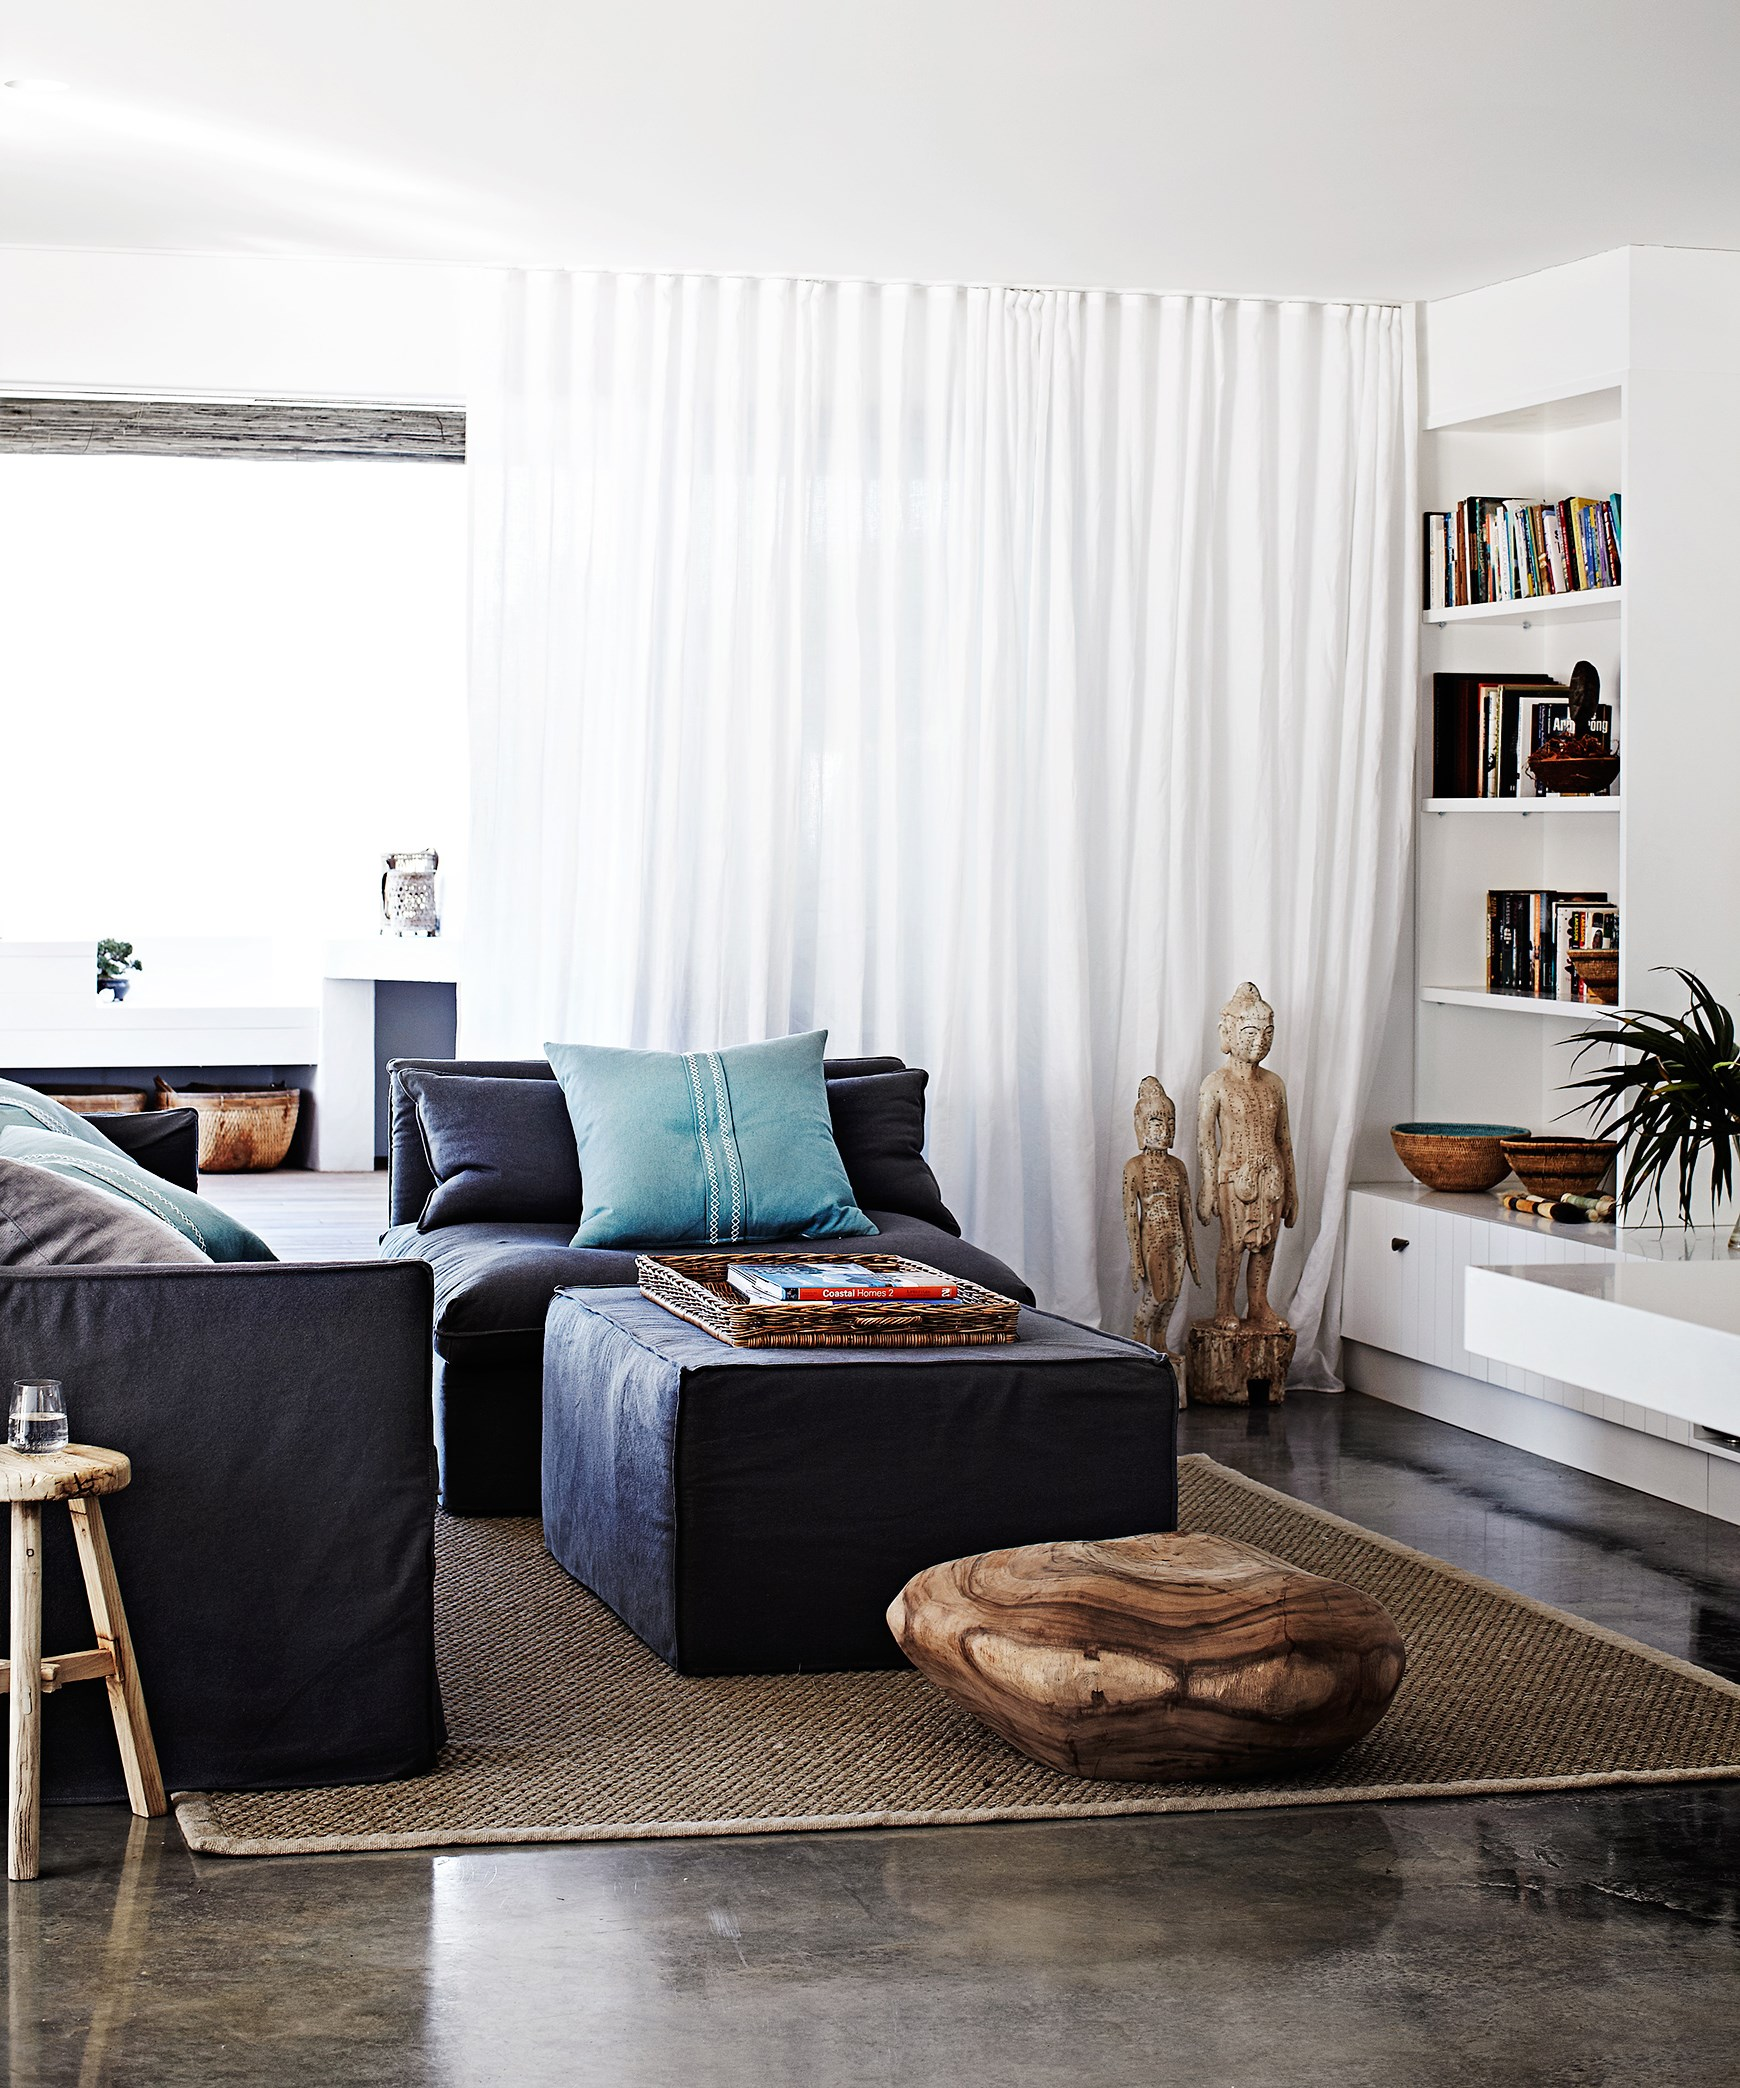 Drawing inspiration from clifftop homes in, South Africa, and the rustic beach houses, in north-eastern Brazil, the owners of this [Northern Beaches home](http://www.homestolove.com.au/weatherboard-home-with-wow-factor-3458) have created a relaxed living room reminiscent of a luxury villa. Photo: Sharyn Cairns / real living